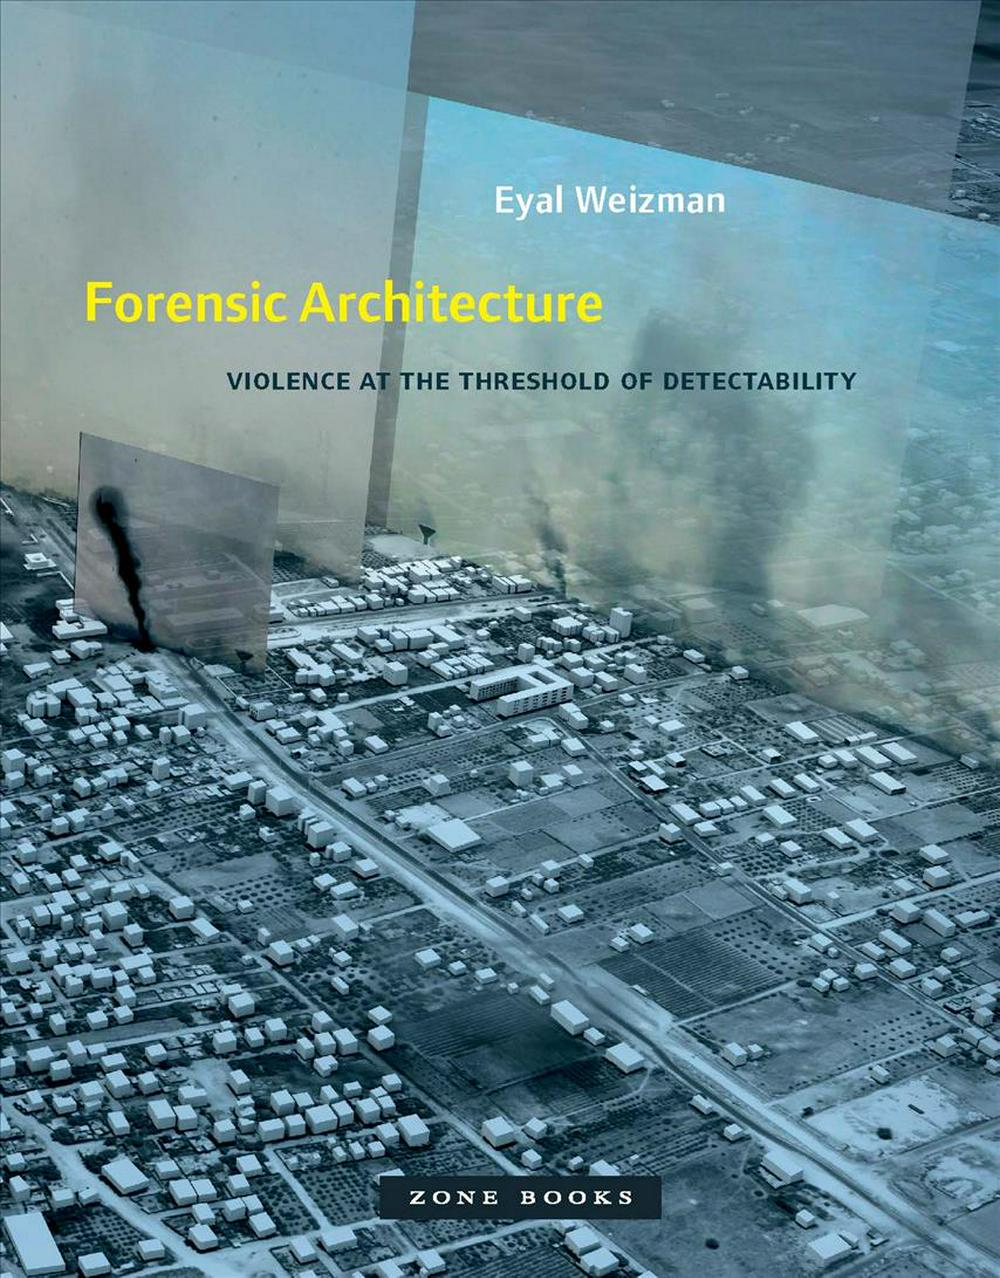 Forensic Architecture: Violence at the Threshold of Detectability by Eyal Weizman, ISBN: 9781935408864